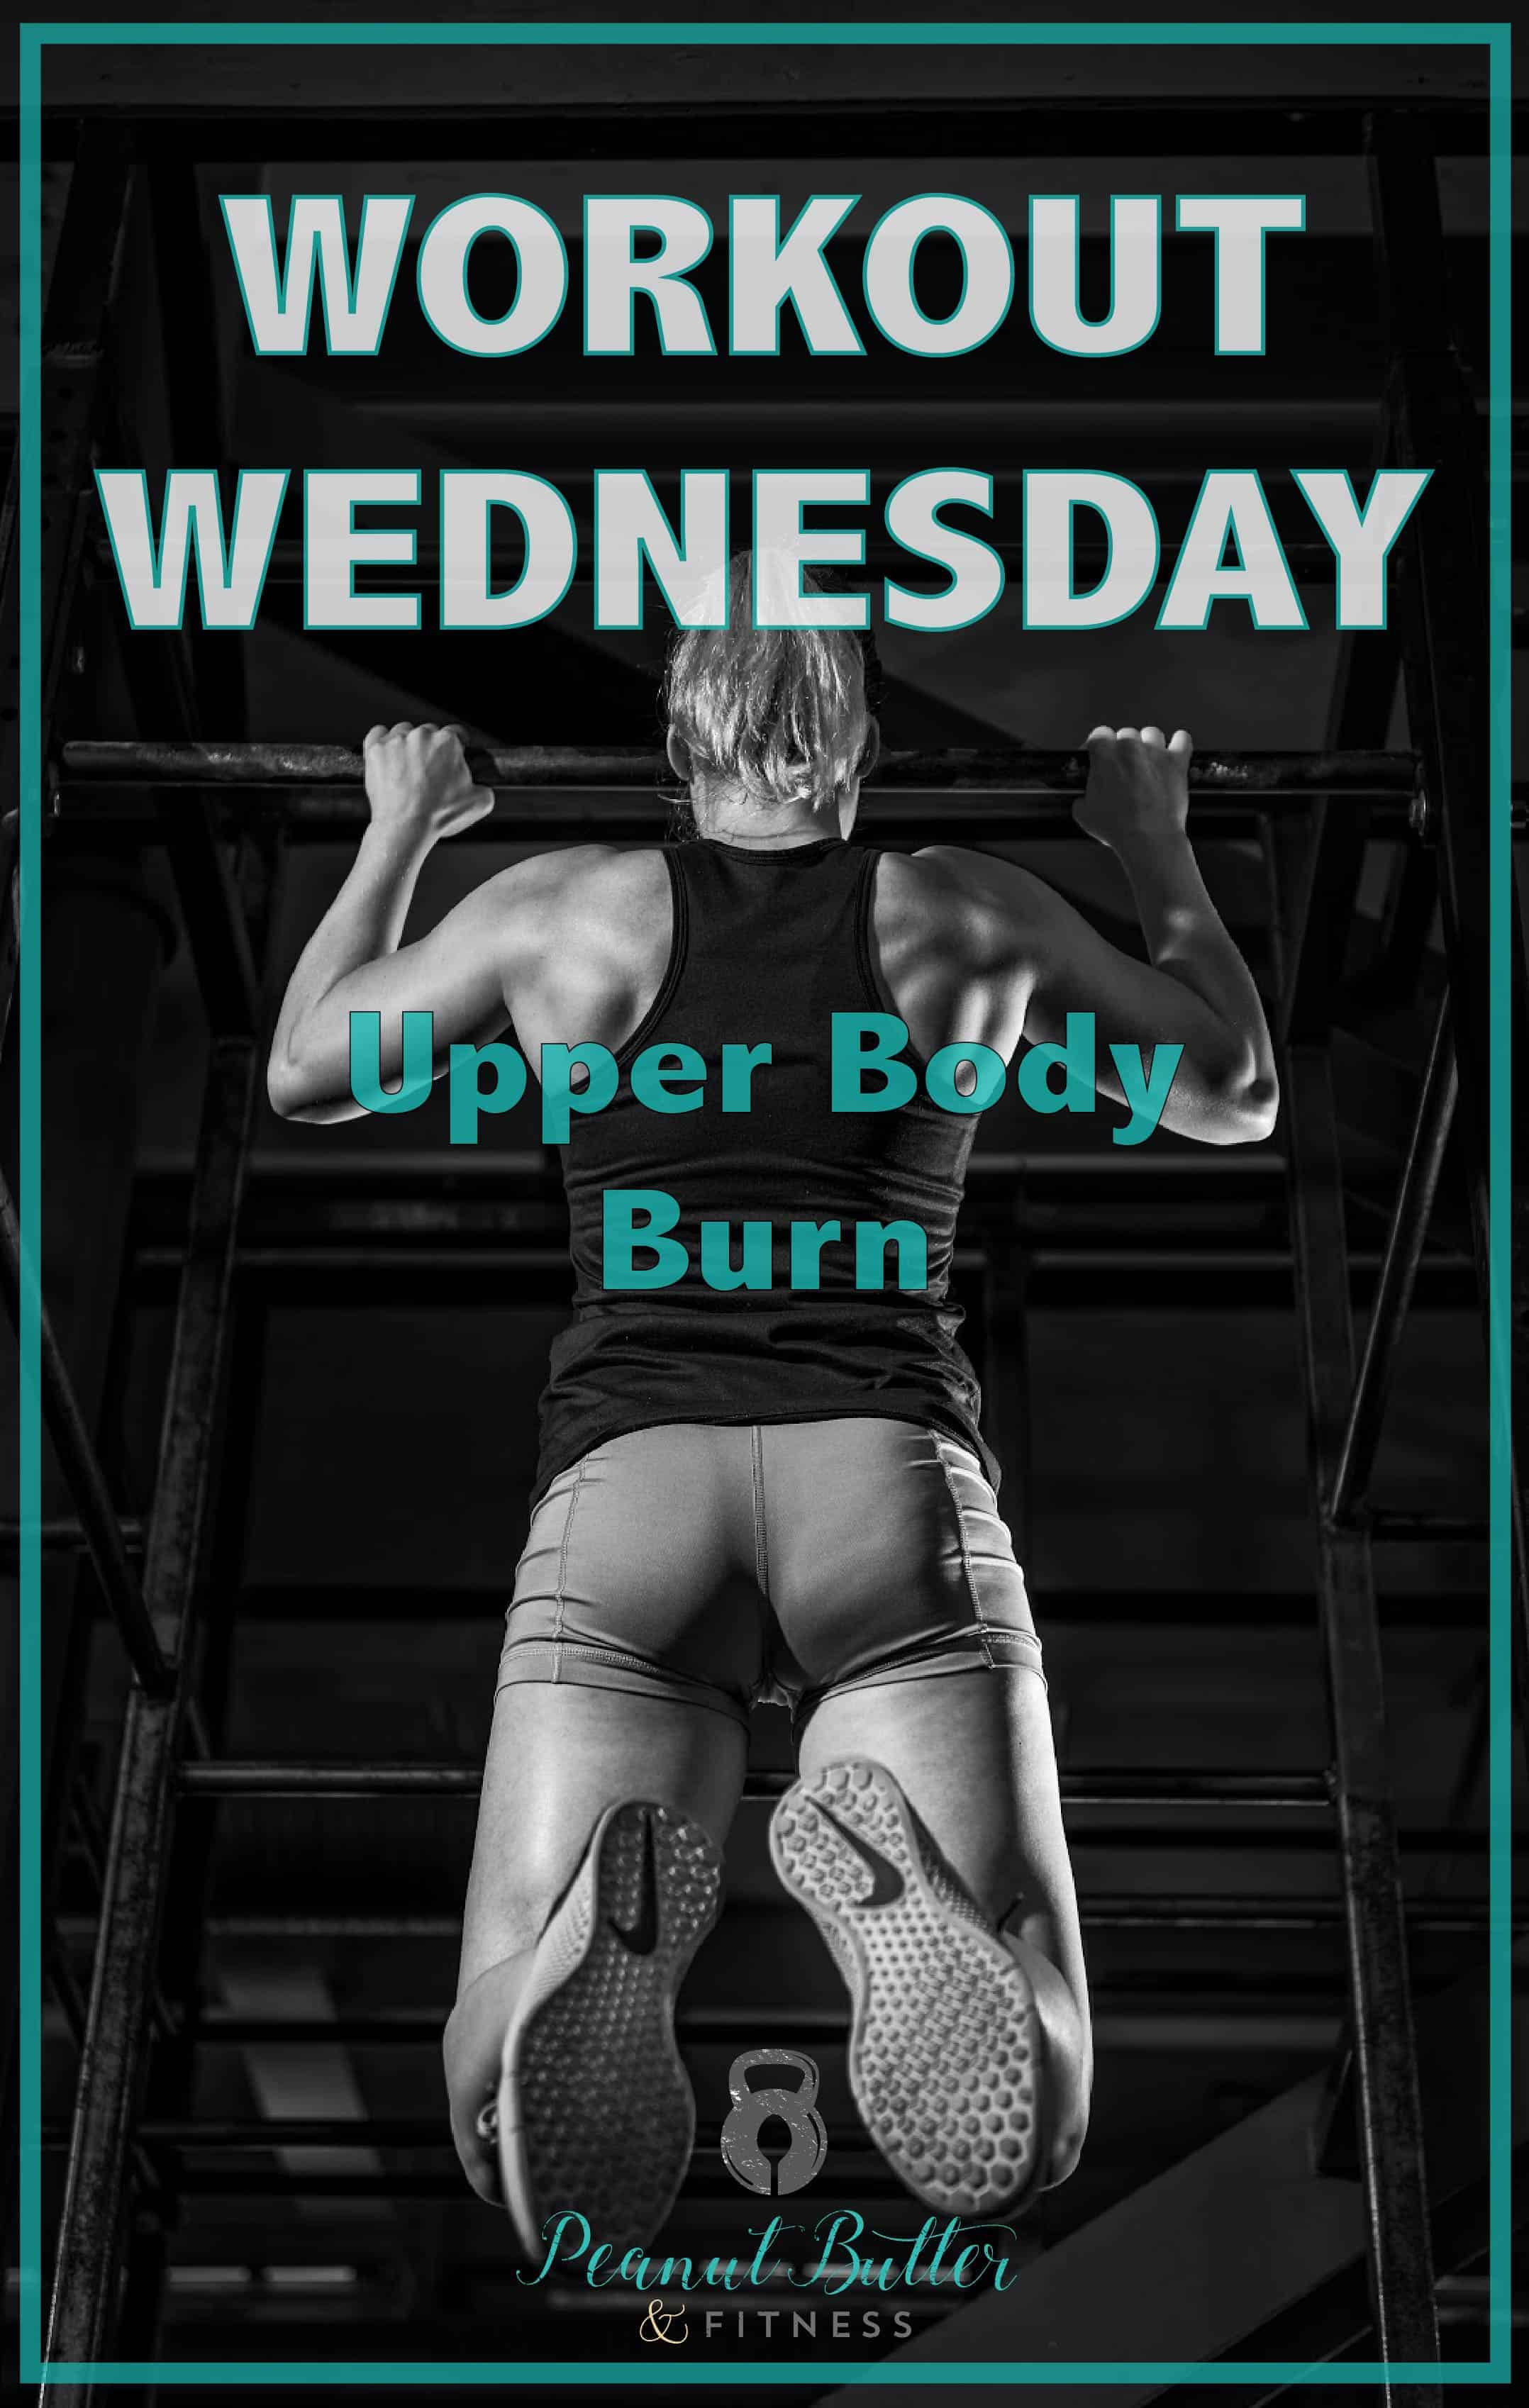 Workout Wednesday - April 2018 - Peanut Butter and Fitness